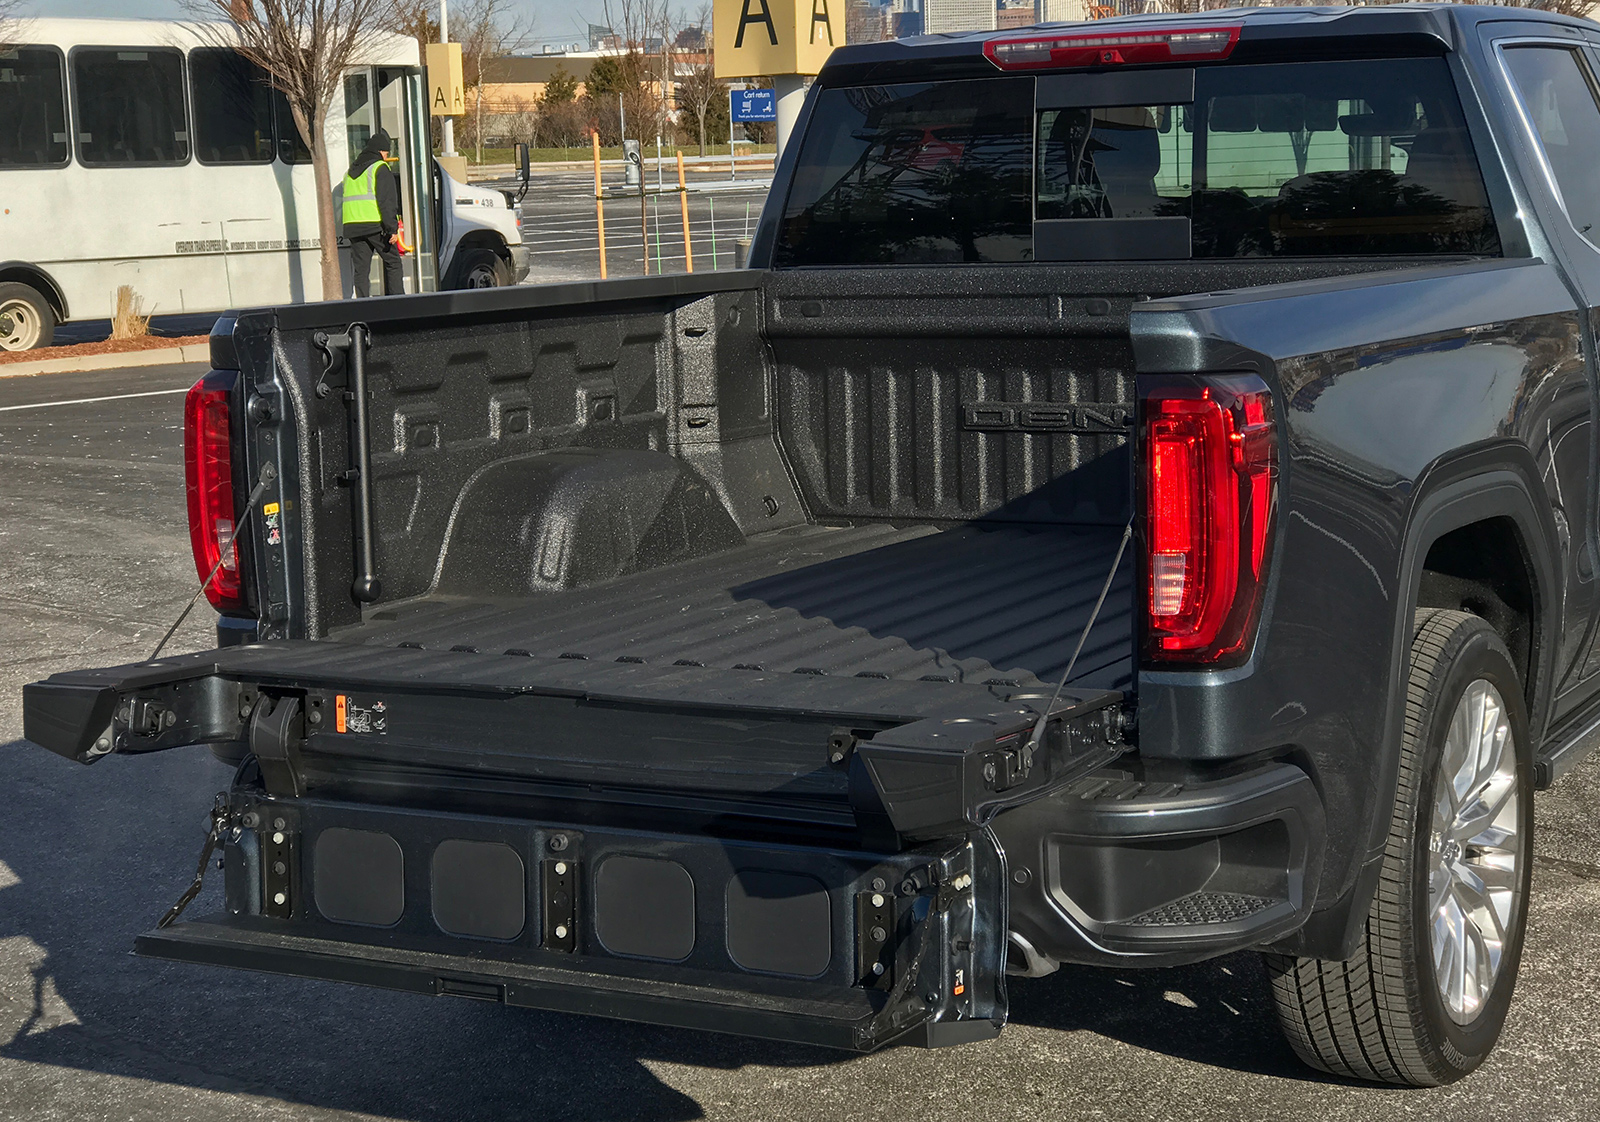 Auto Loans Near Me >> 2019 GMC Sierra Denali 1500 Test Drive Review: A Nice Pickup Truck, Sure, But Not $68,000 Nice ...